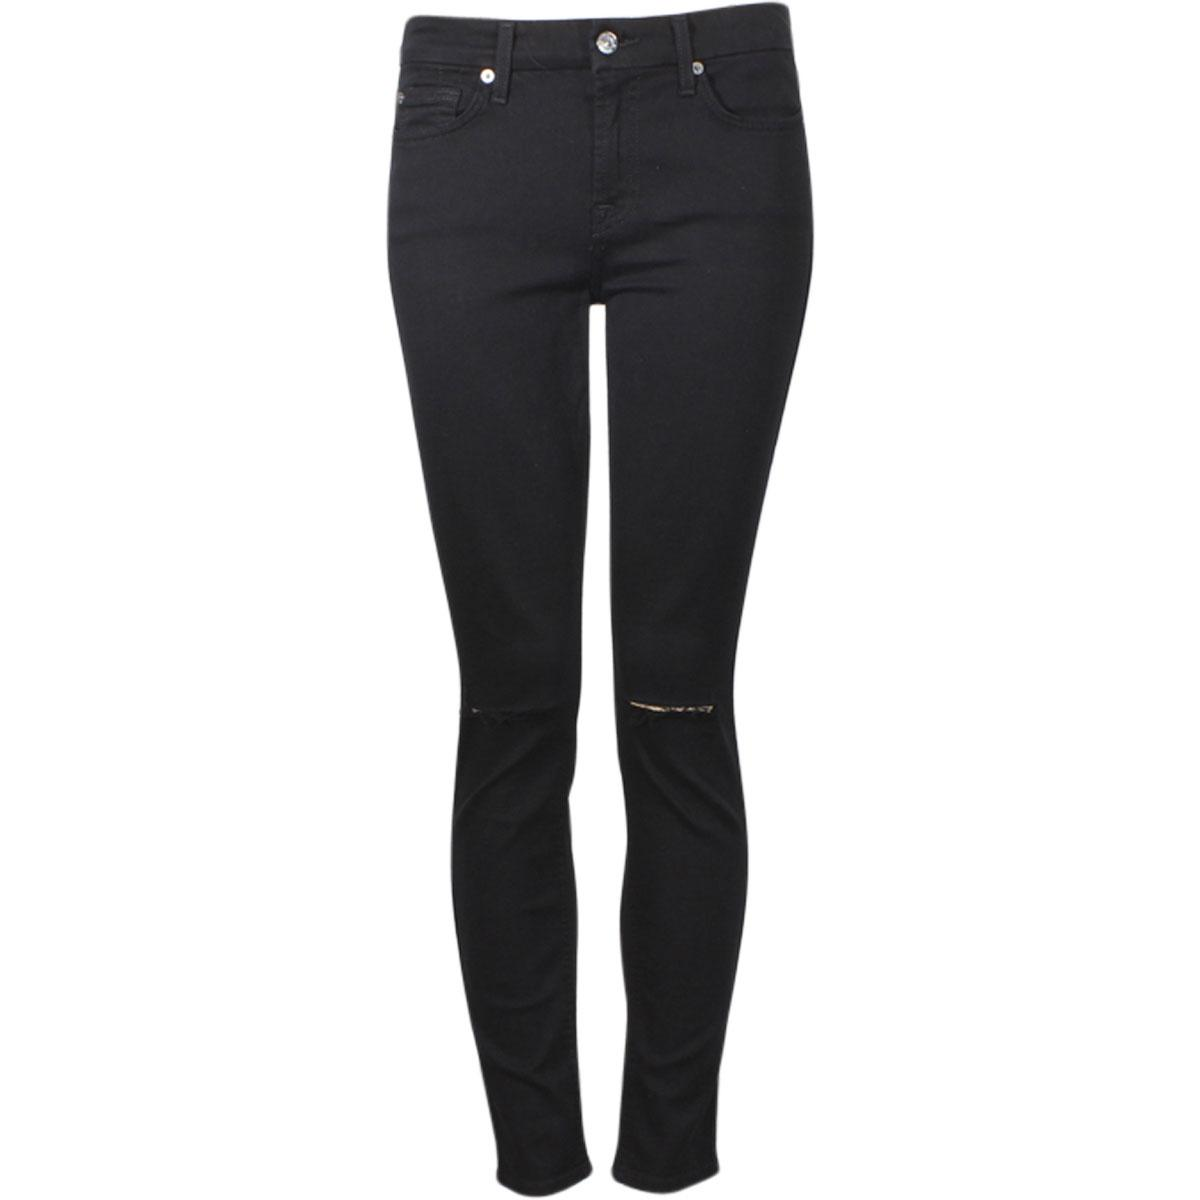 Image of 7 For All Mankind Women's (B)Air Denim Ankle Skinny With Destroy Cropped Jeans - Black - 27 (3/4)